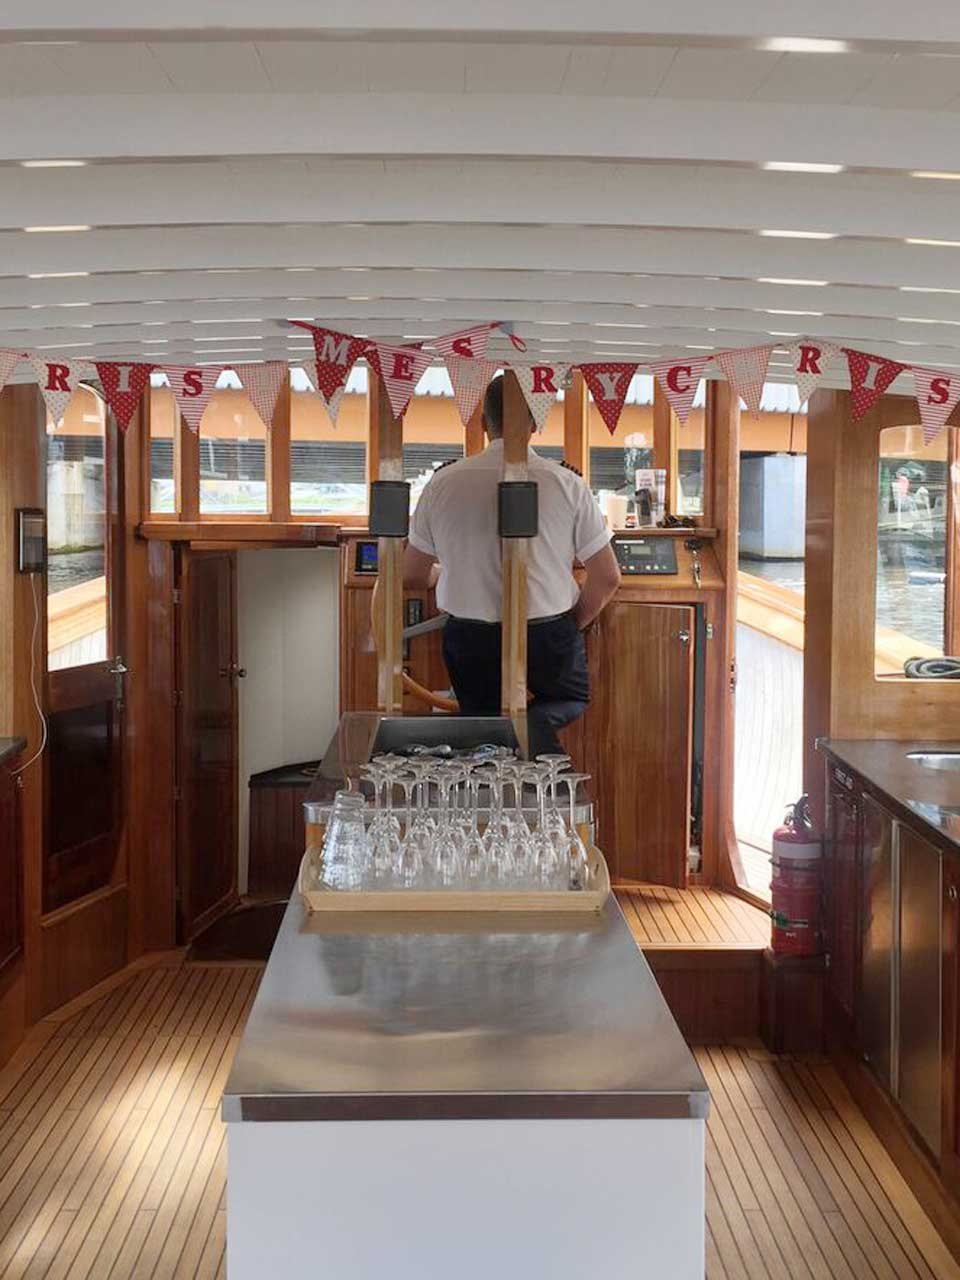 luxurious skippered boats available for office parties and work events in Melbourne